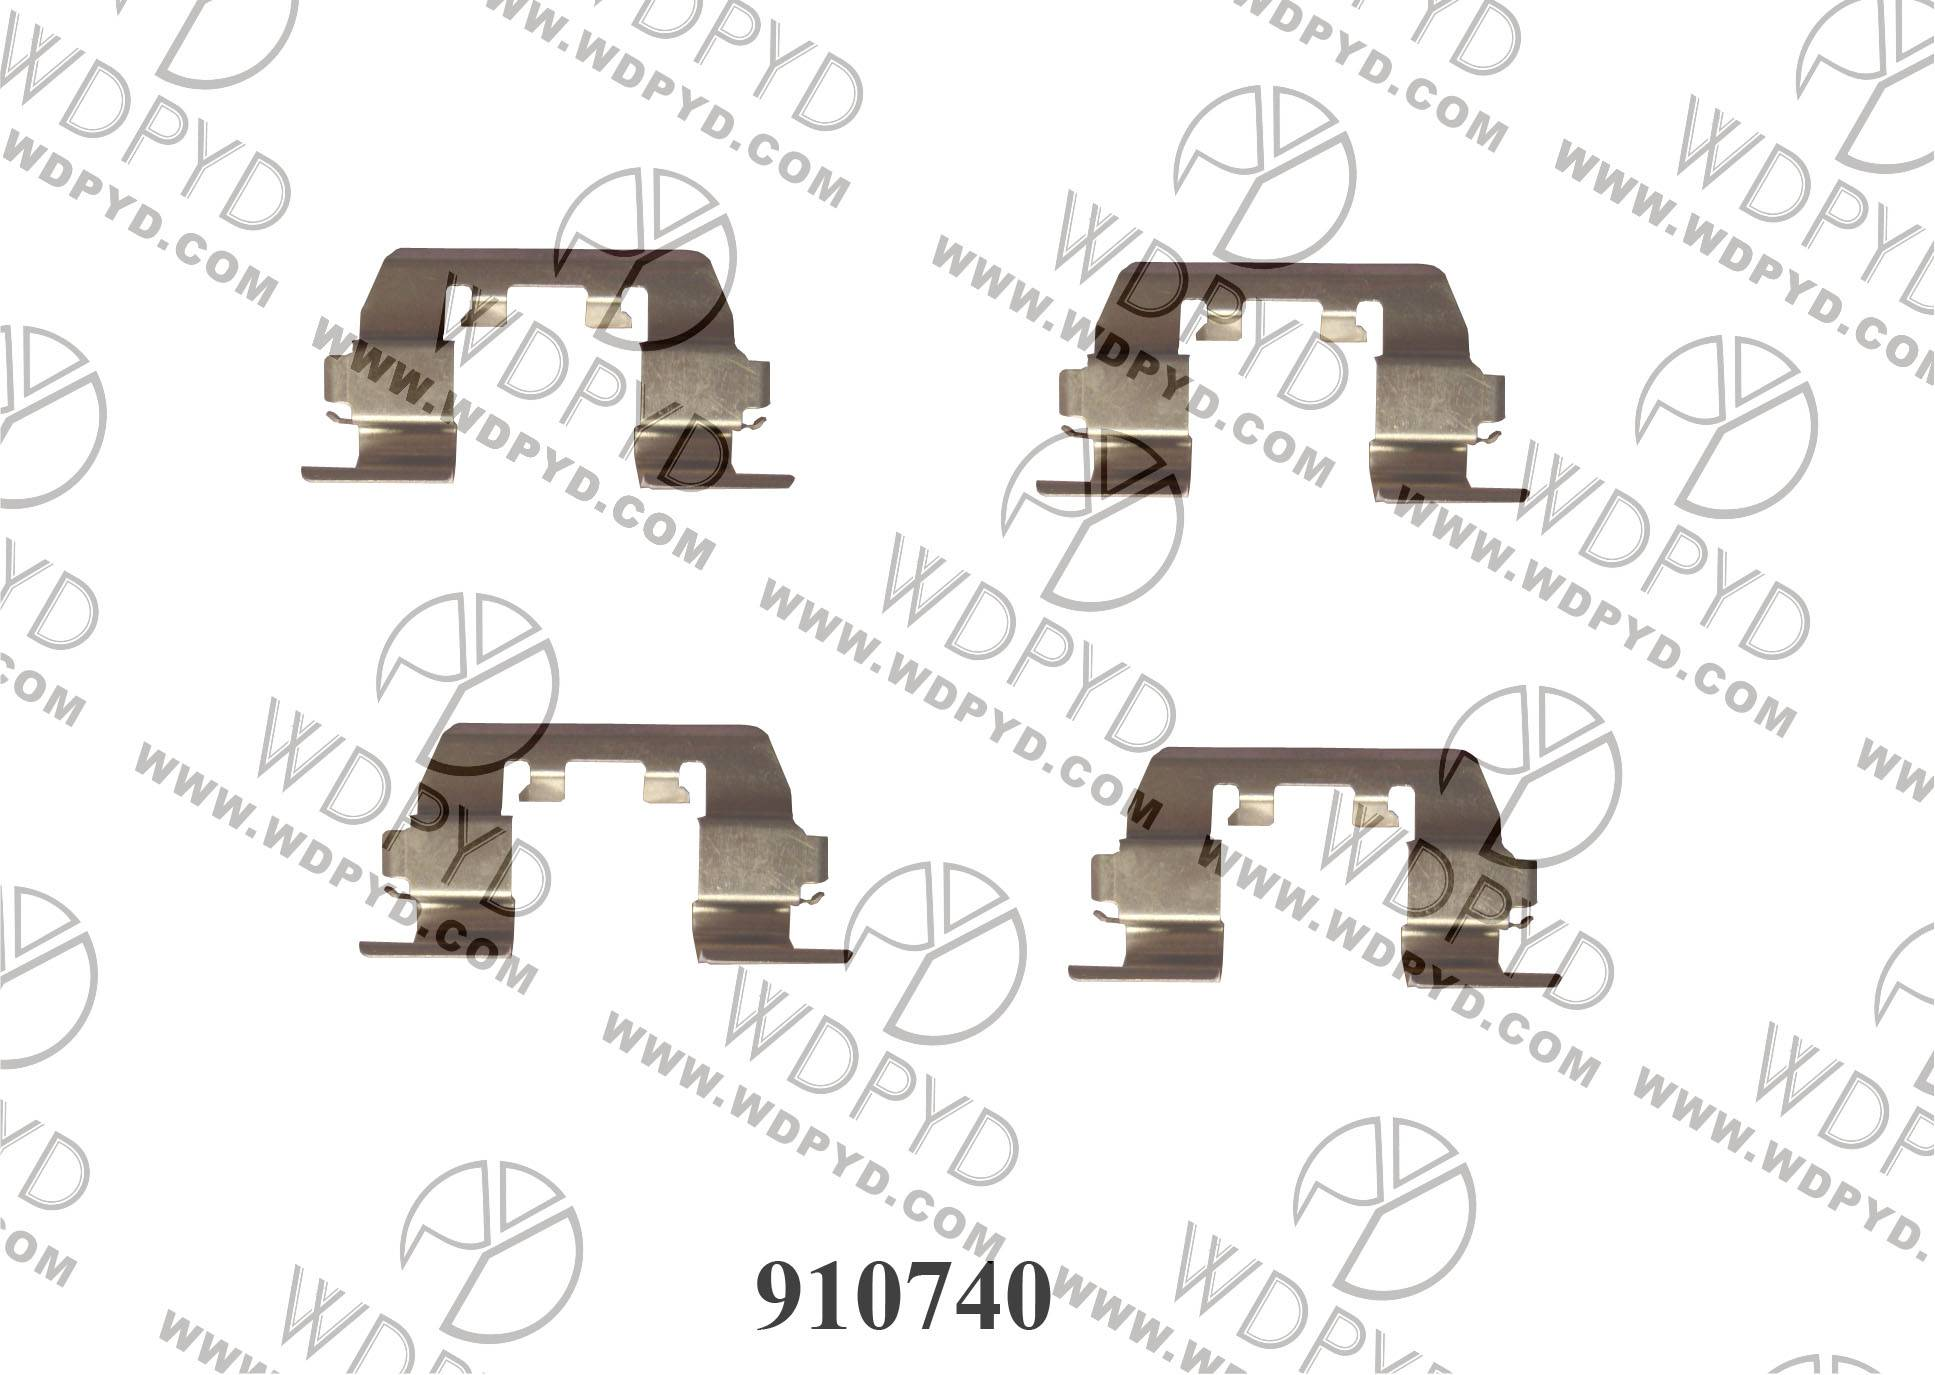 WELLDE DISC BRAKE PAD CLIP 910740 FOR FRONT HONDA ACCORD 1983-1985